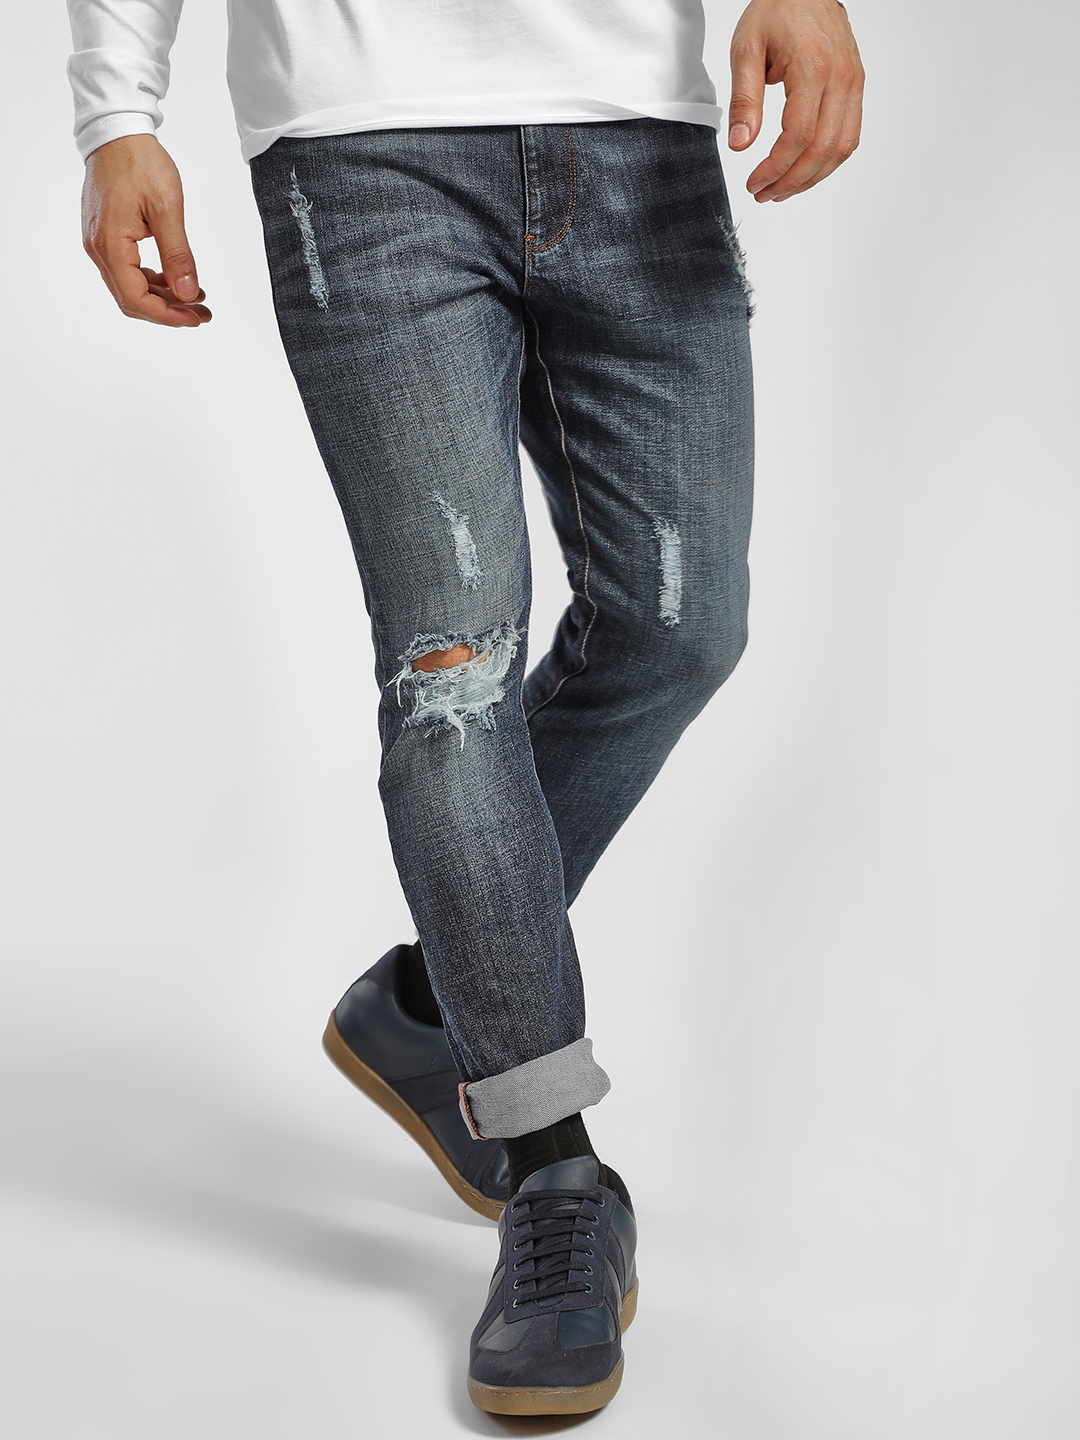 X.O.Y.O Blue Mid Wash Distressed Skinny Jeans 1